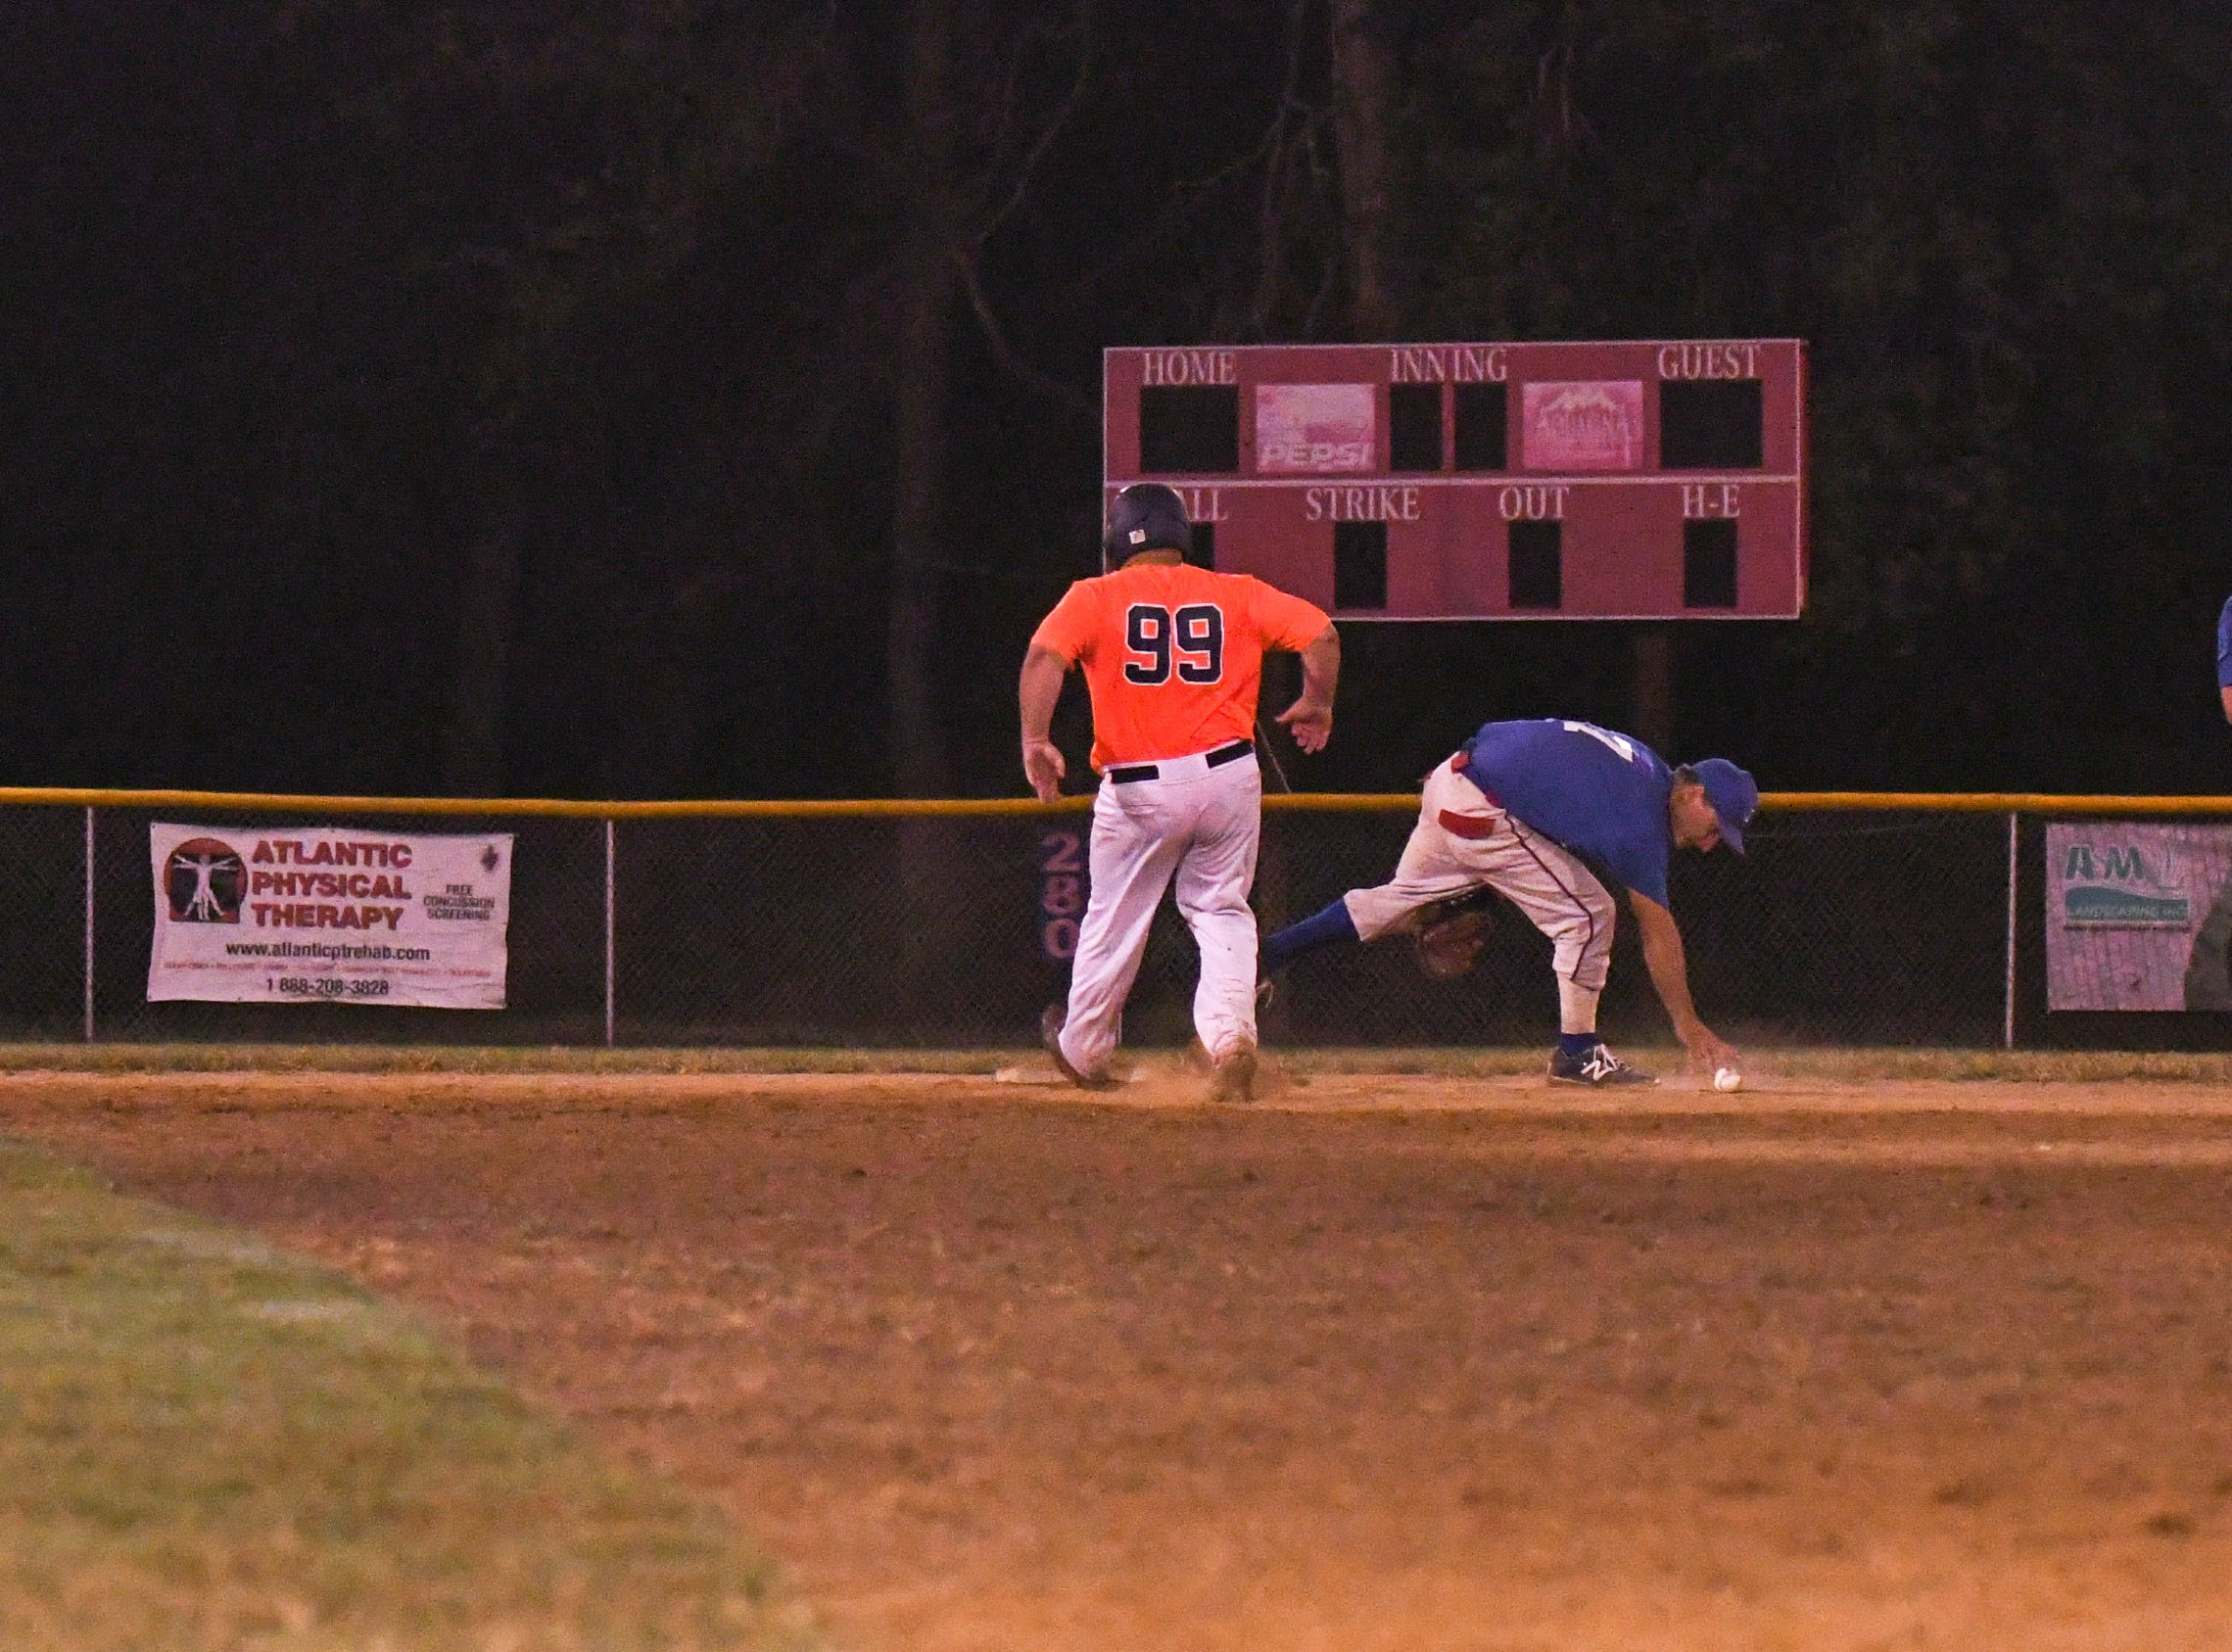 Otis Elzey makes it safely to second base during a game in the new Ty Cobb Senior Baseball League in Salisbury on Tuesday, Oct 9, 2018.